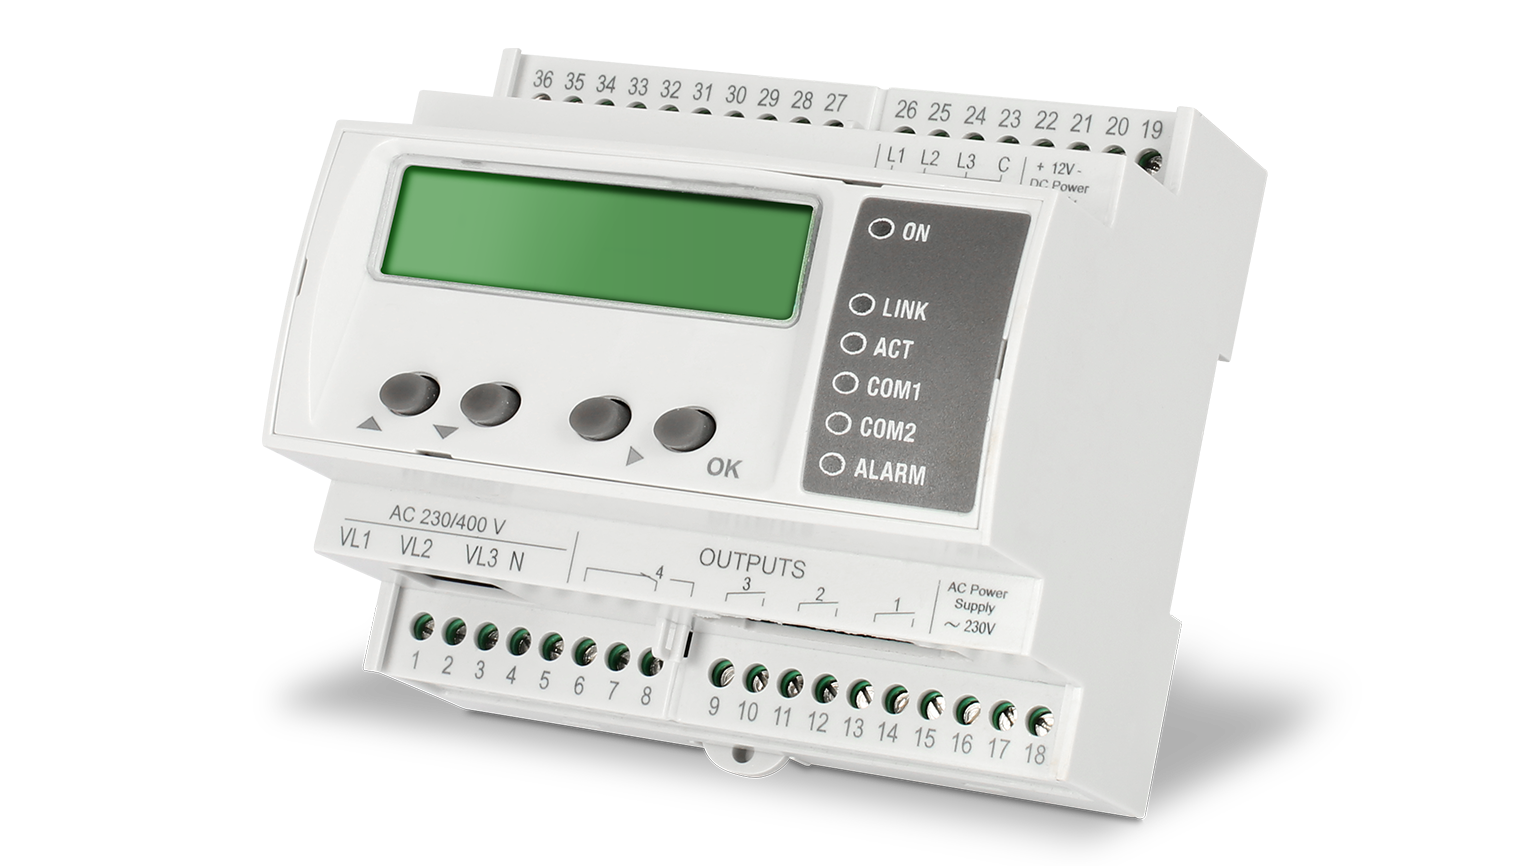 Fronius Pv System Controller Photovoltaic Wiring Diagram Integrating Systems Into Diesel Generator Powered Grids Requires Quick And Reliable Control Of The Entire